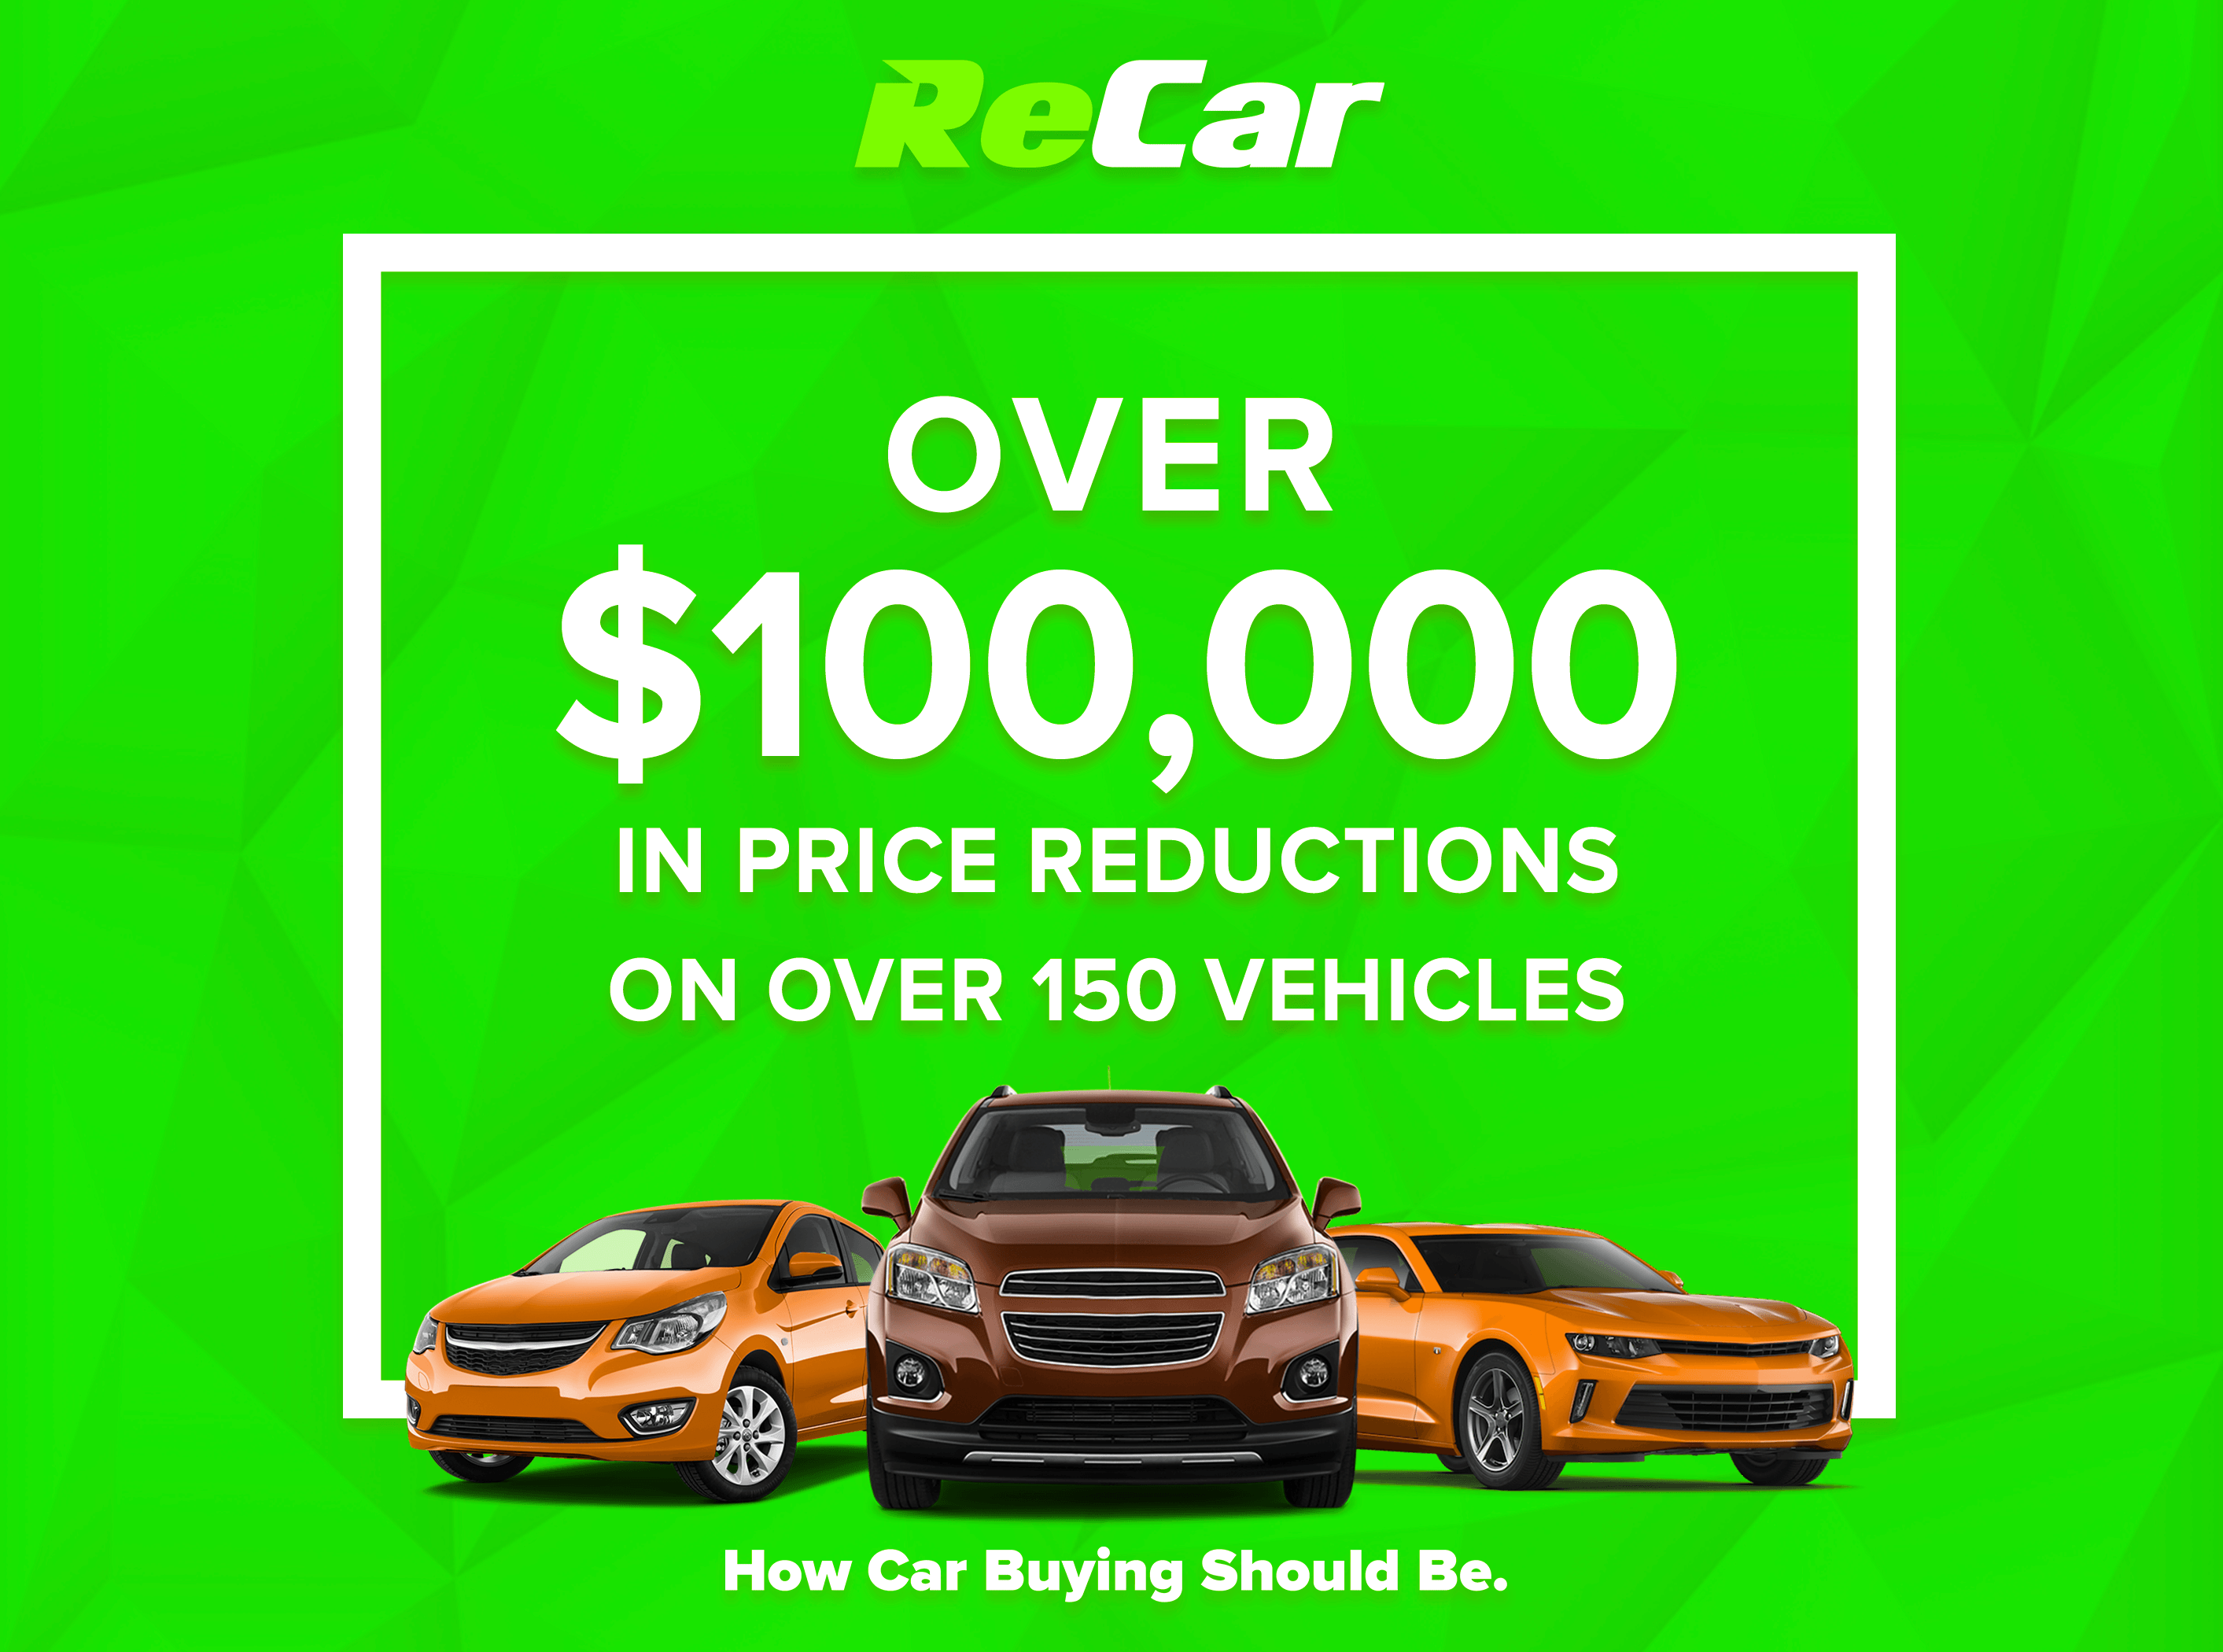 ReCar Price Reductions